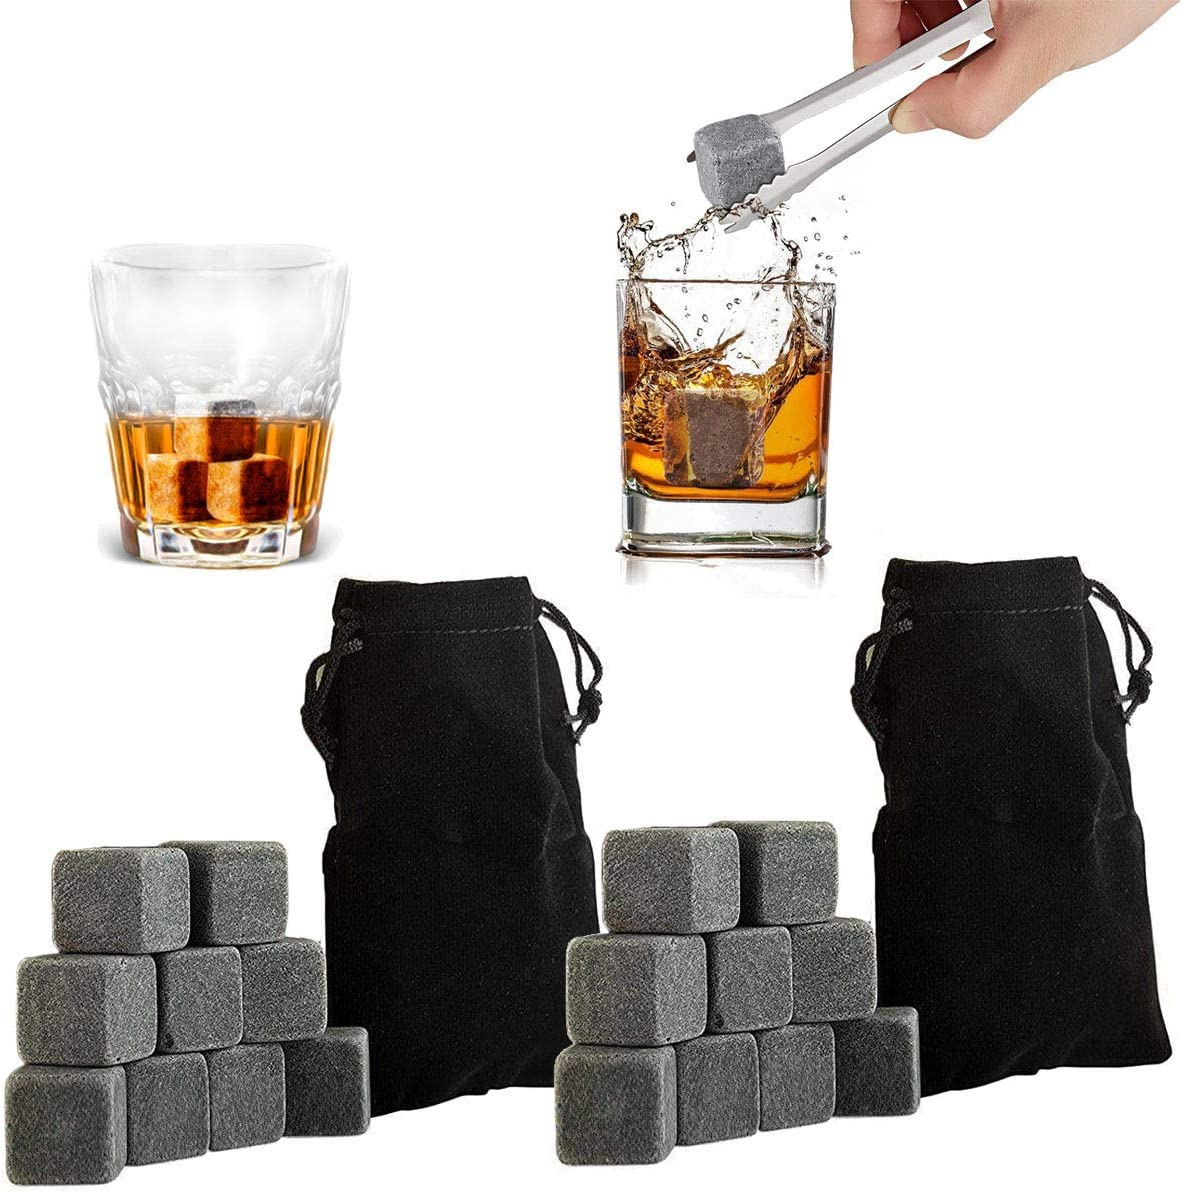 TraderPlus Set of 18 Cocktail Stones Chillers Whiskey Chilling Rocks with Velvet Carrying Pouch - Perfect Gift